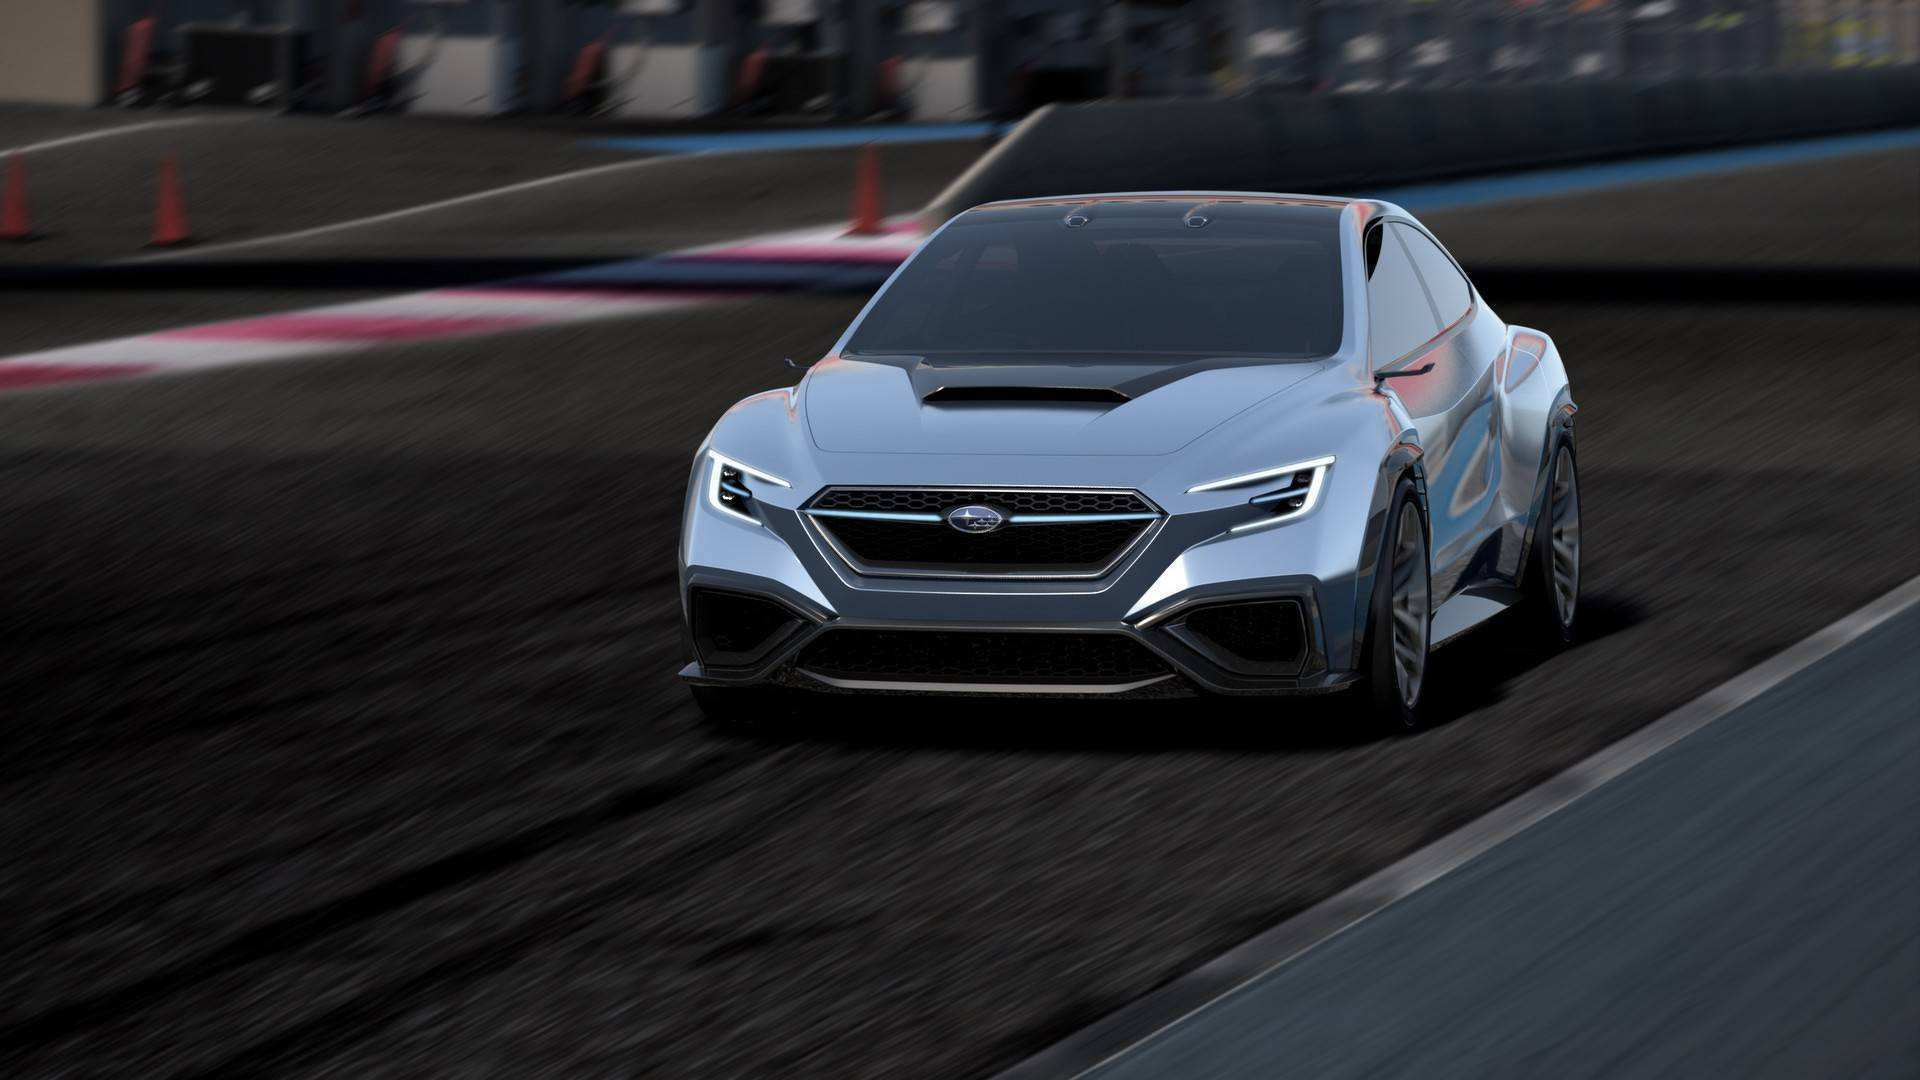 99 New Subaru Sti 2020 Rumors Picture